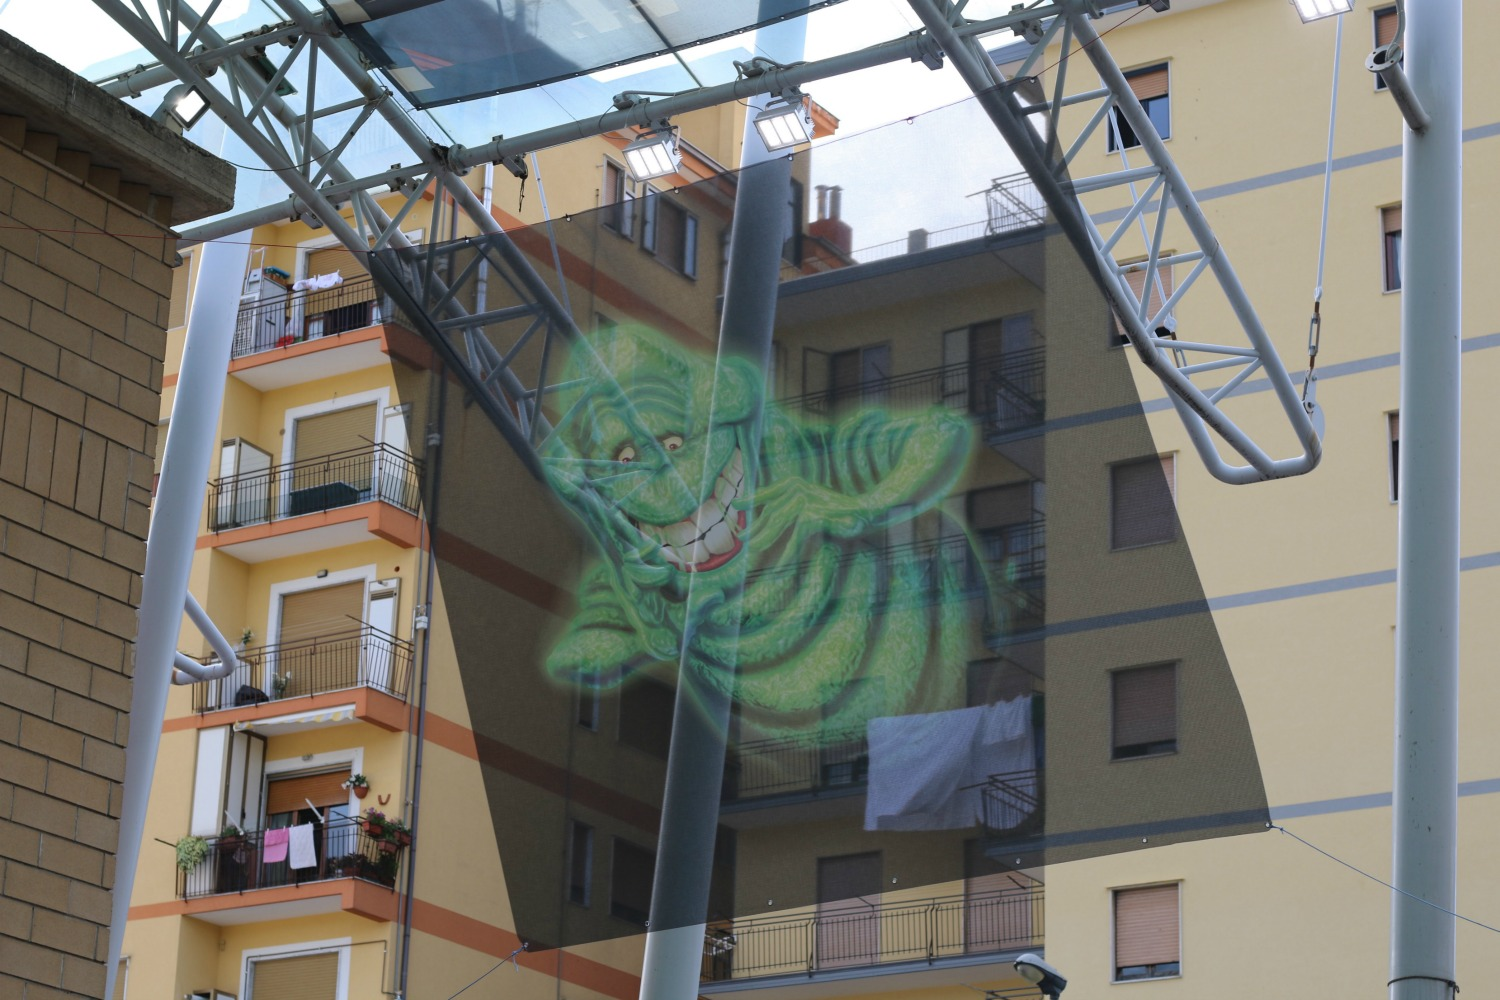 Ghostbusters a Giffoni 2016, lo Slimer incombe sulle palazzine...